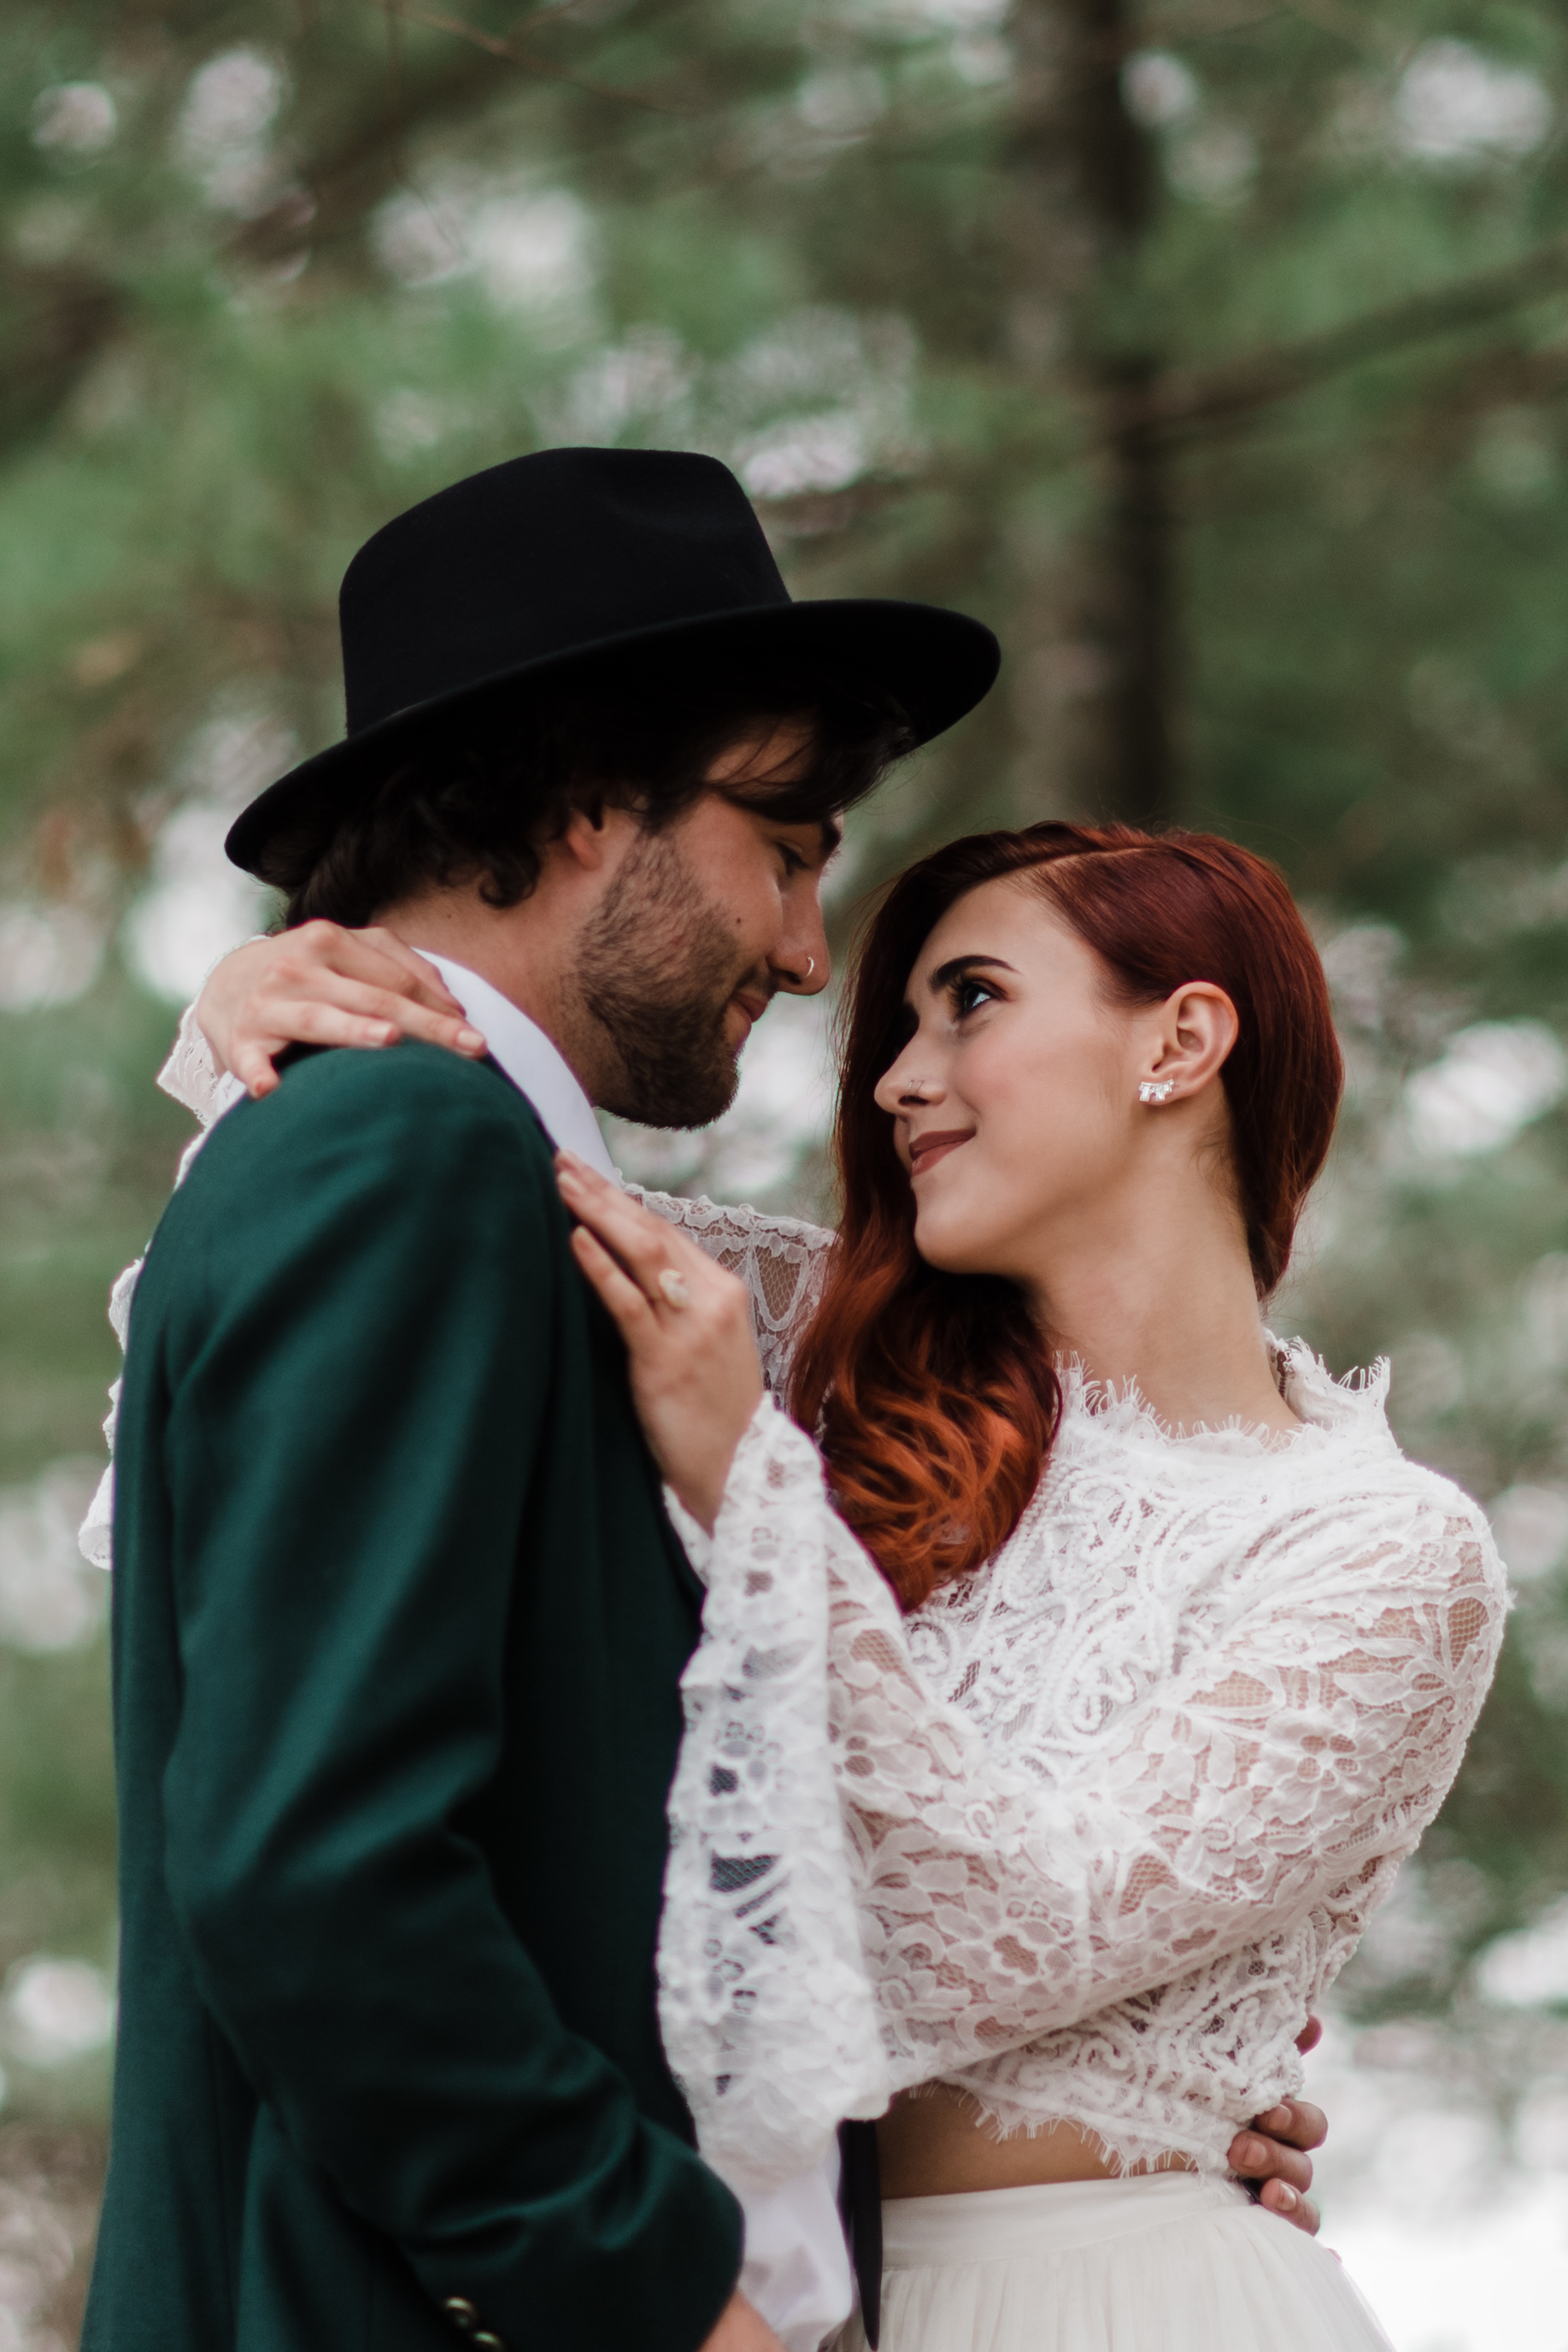 Bride in lace and beaded crop top with arms wrapped around groom in green jacket and black fedora and gazing into his eyes.